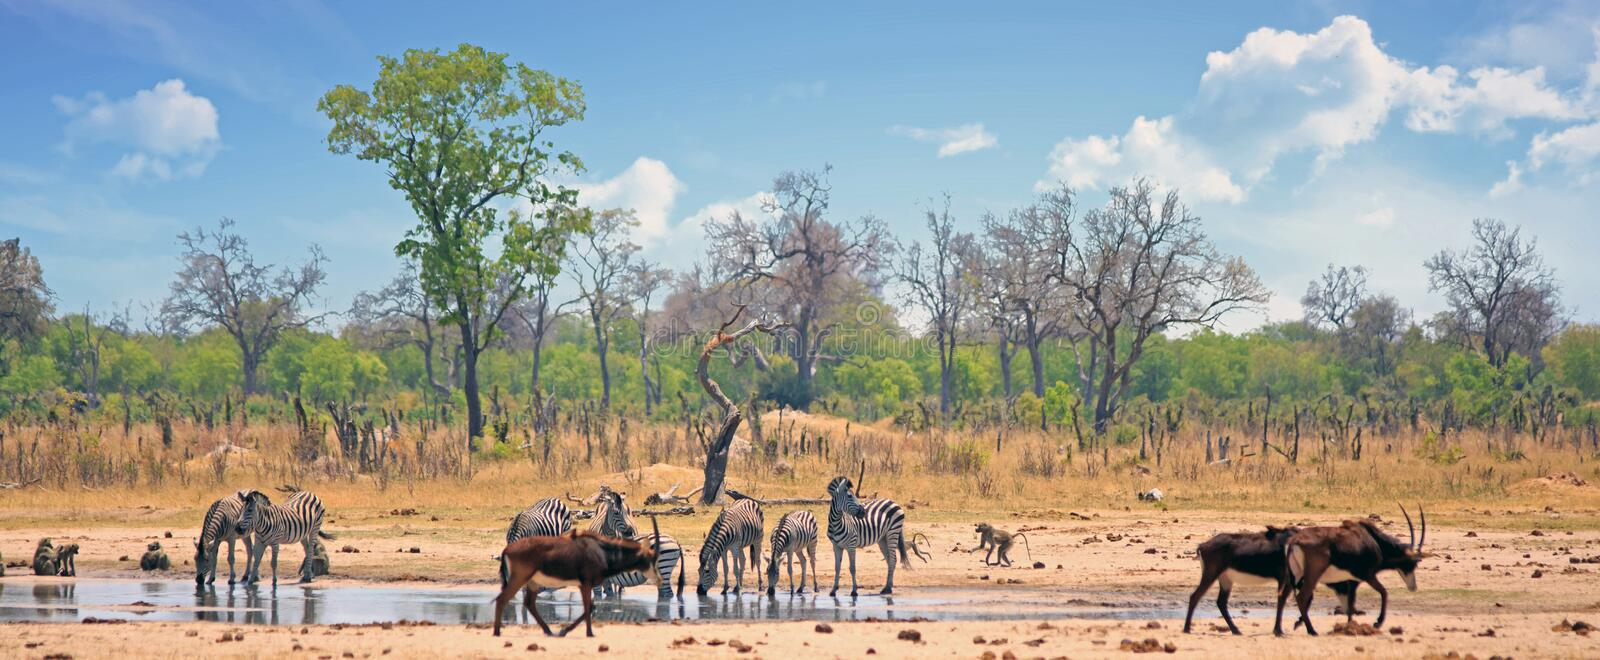 A vibrant waterhole scene with Sable Antelopes and Giraffe with a blue cloudy sky in Hwange stock photography